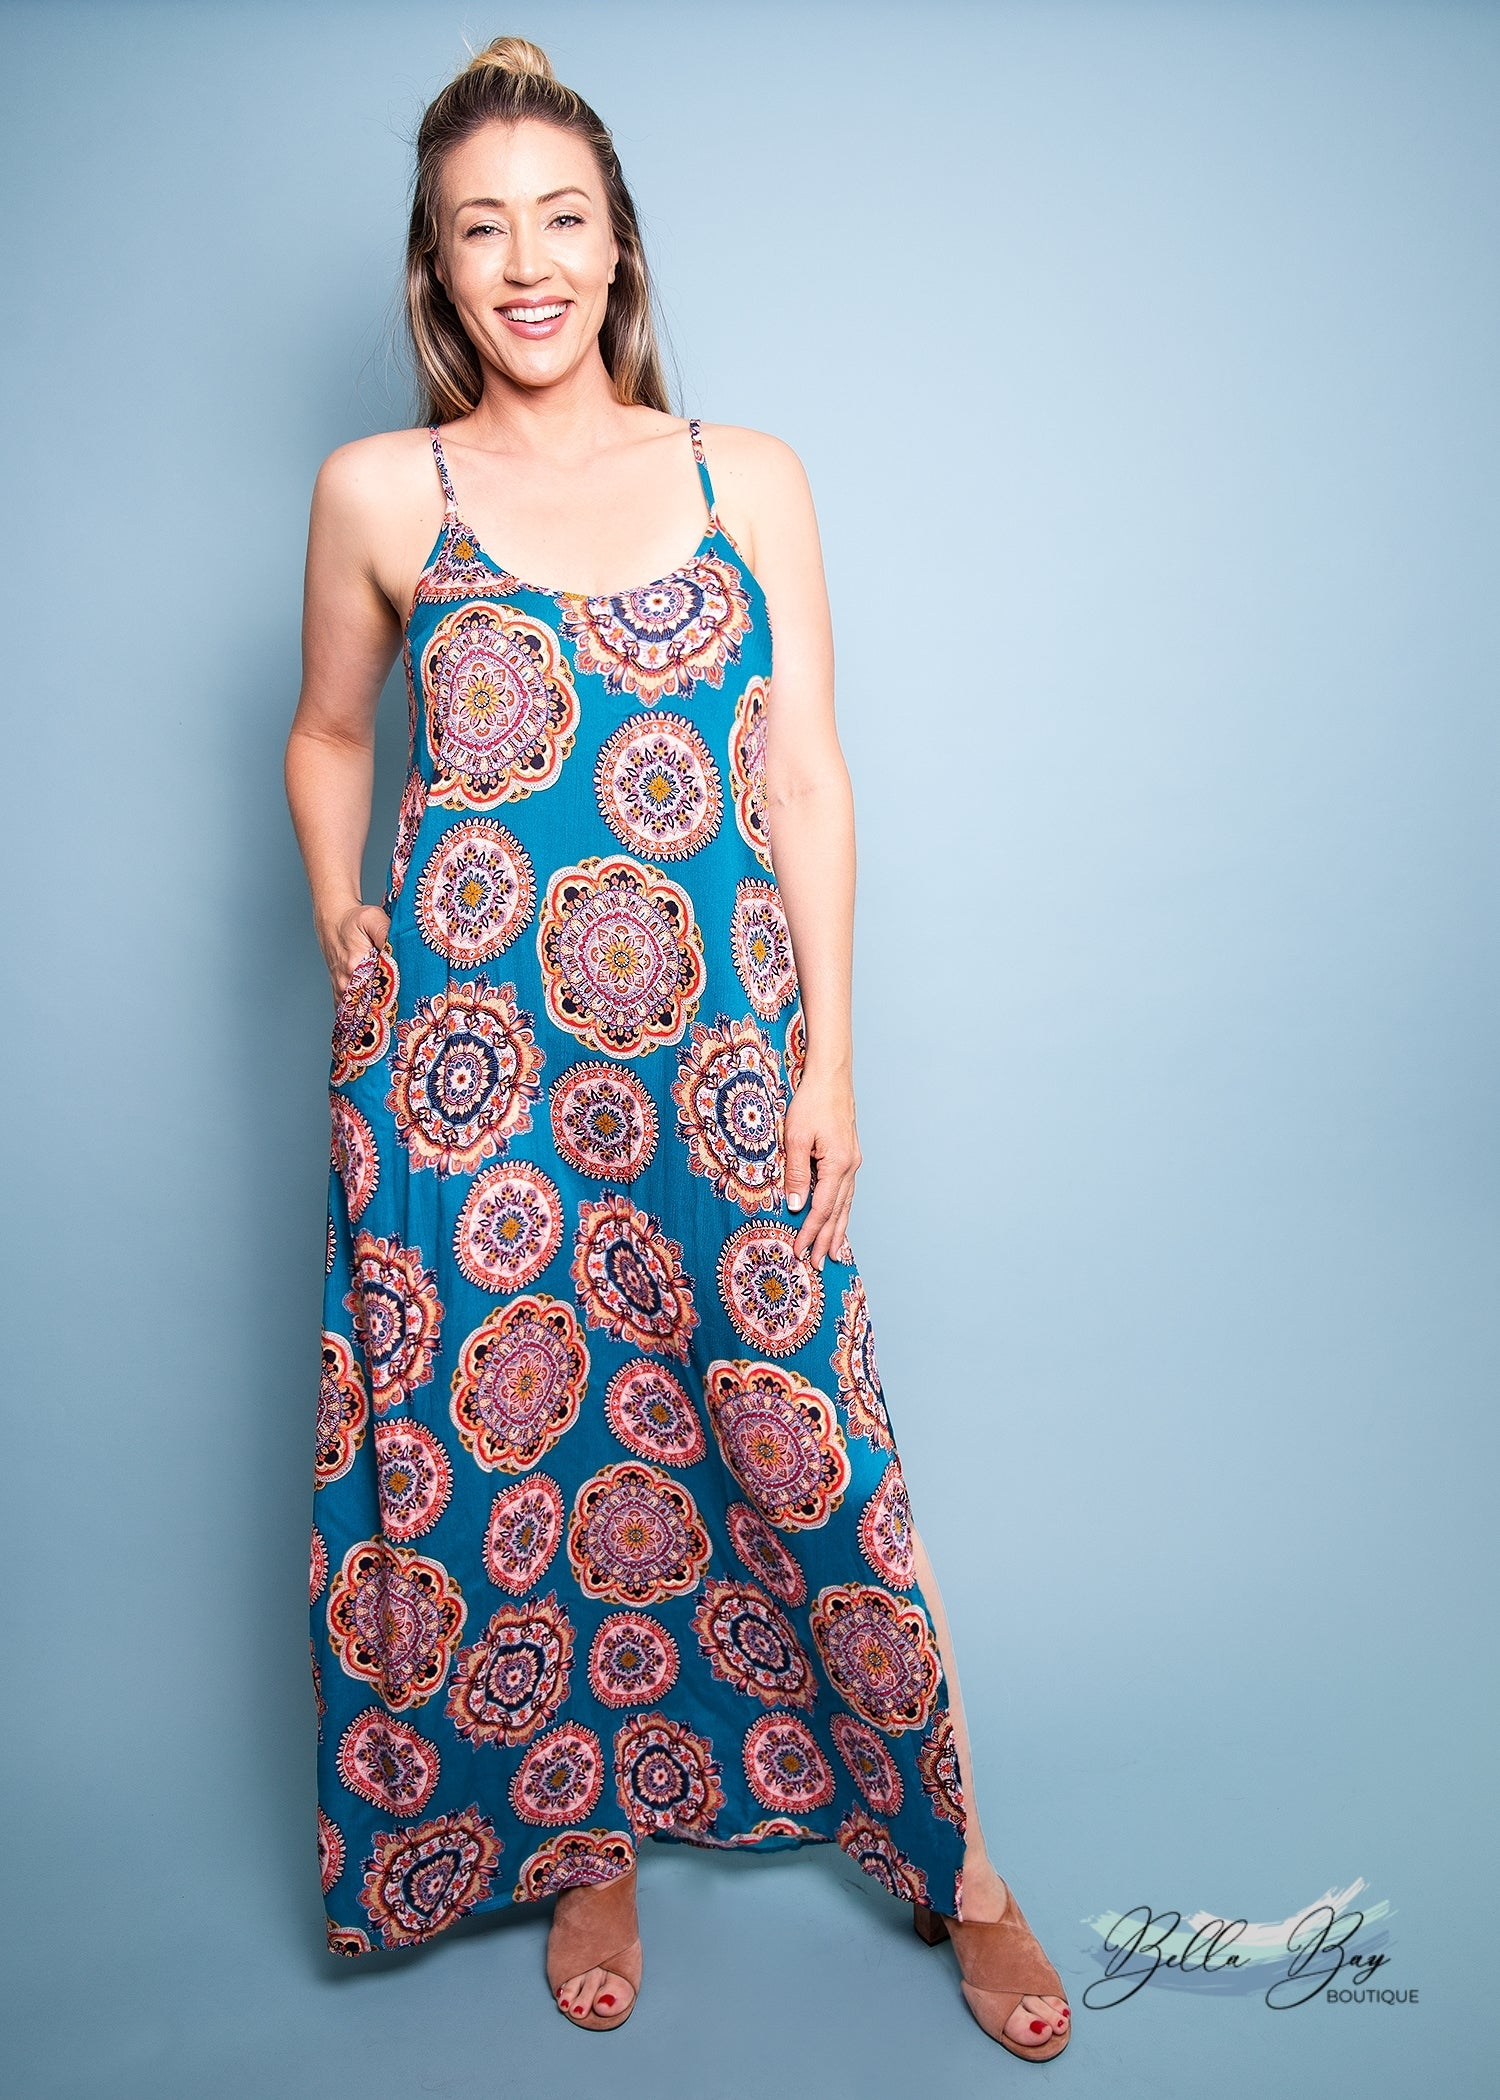 Paisley Raye Pineapple Lily- Teal Medallion (S) - Paisley Raye with Bella Bay Boutique, shop now at  https://shopbellabay.com/ or locally in Newport Oregon